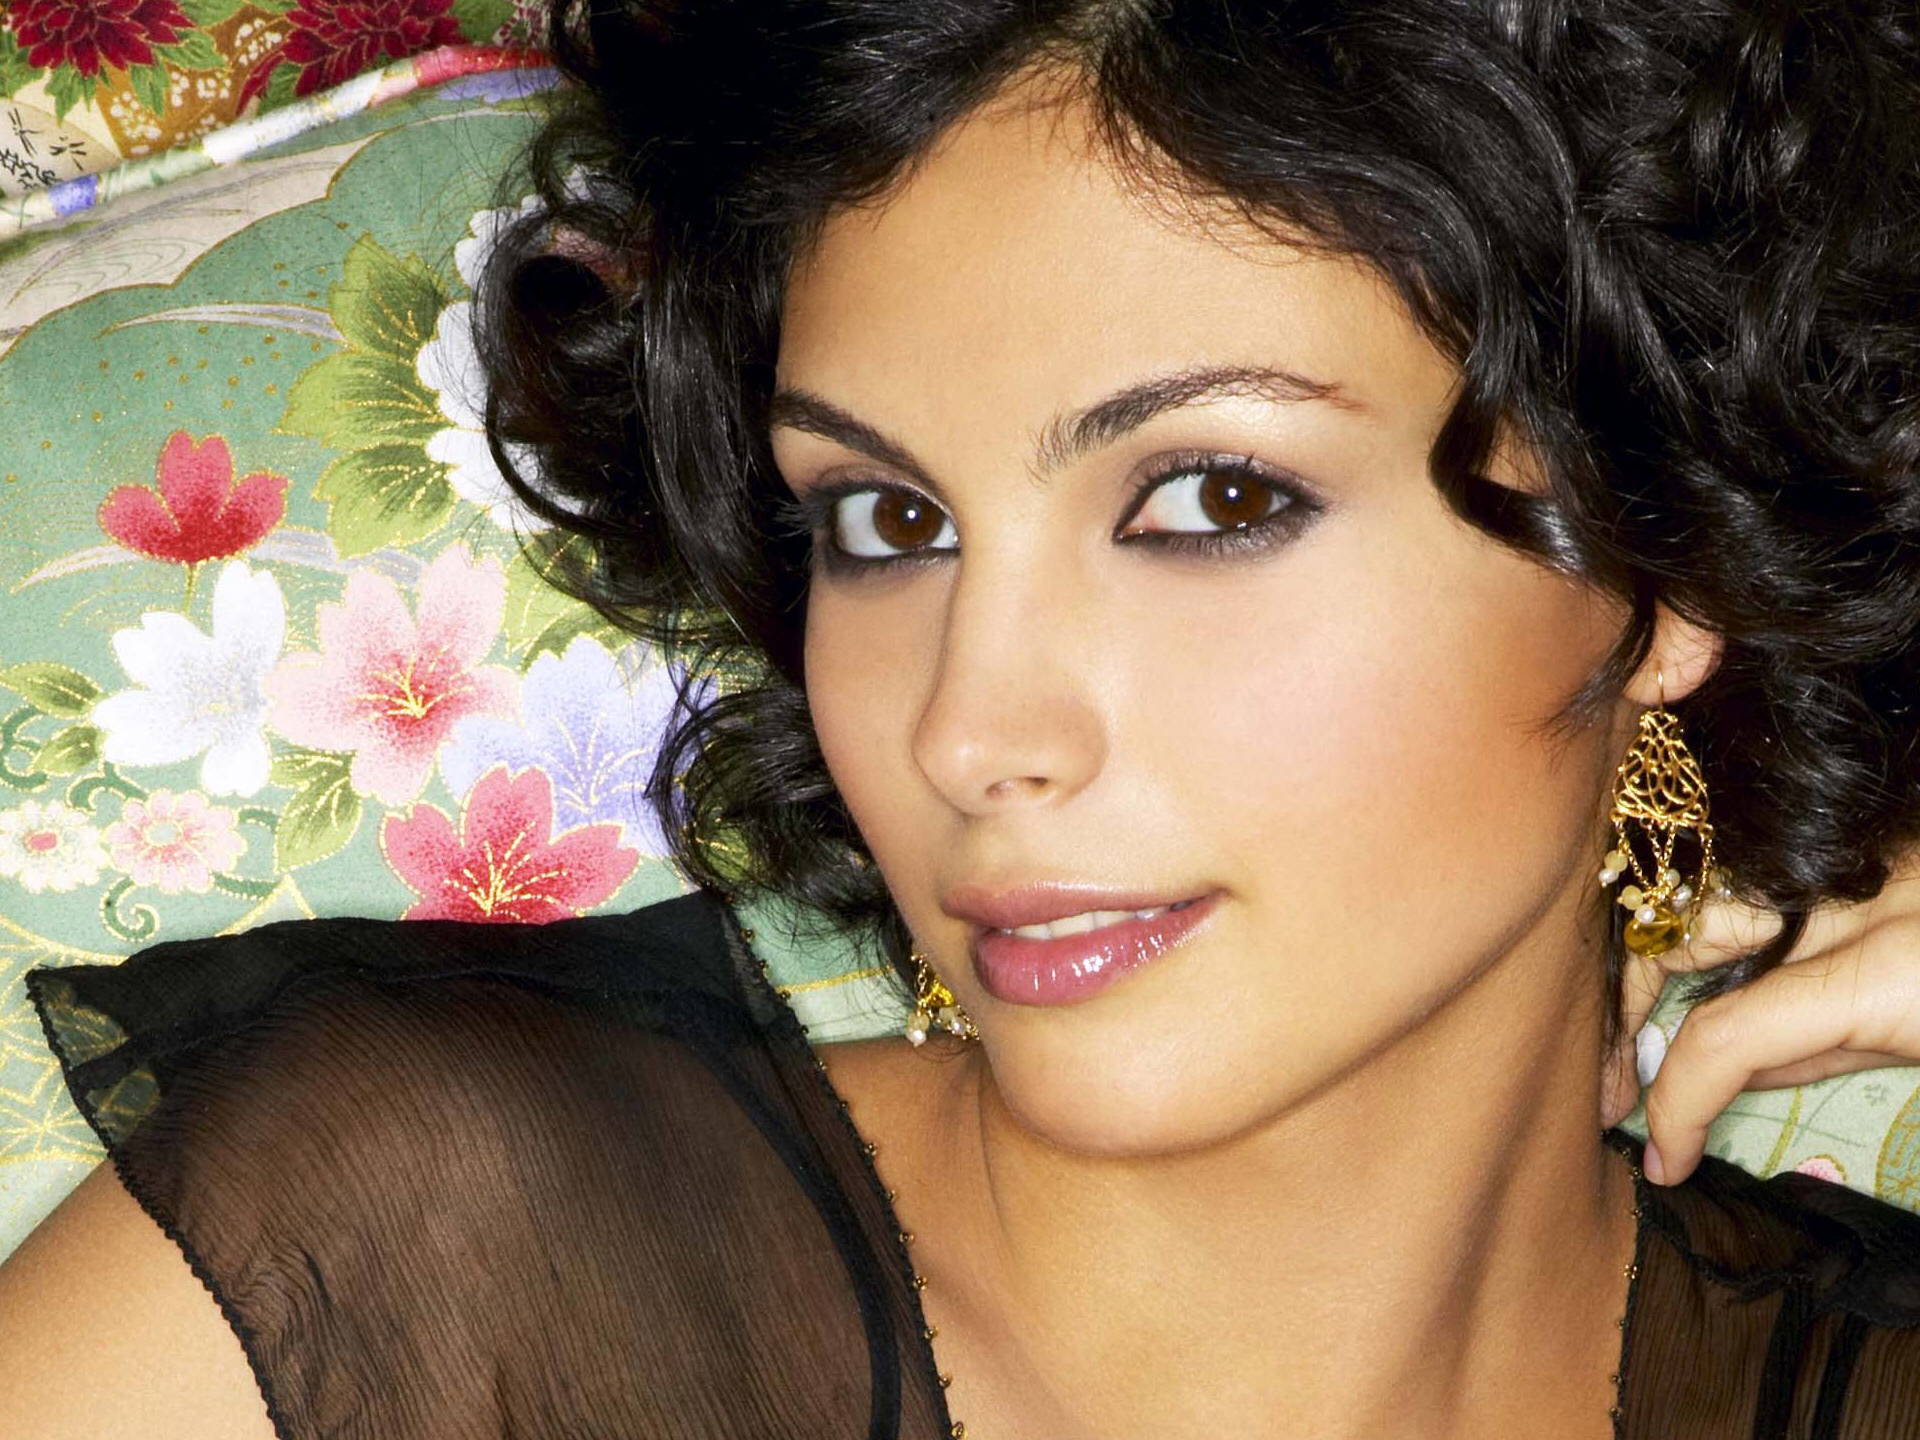 Best Morena Baccarin wallpaper ID:48503 for High Resolution hd 1920x1440 desktop